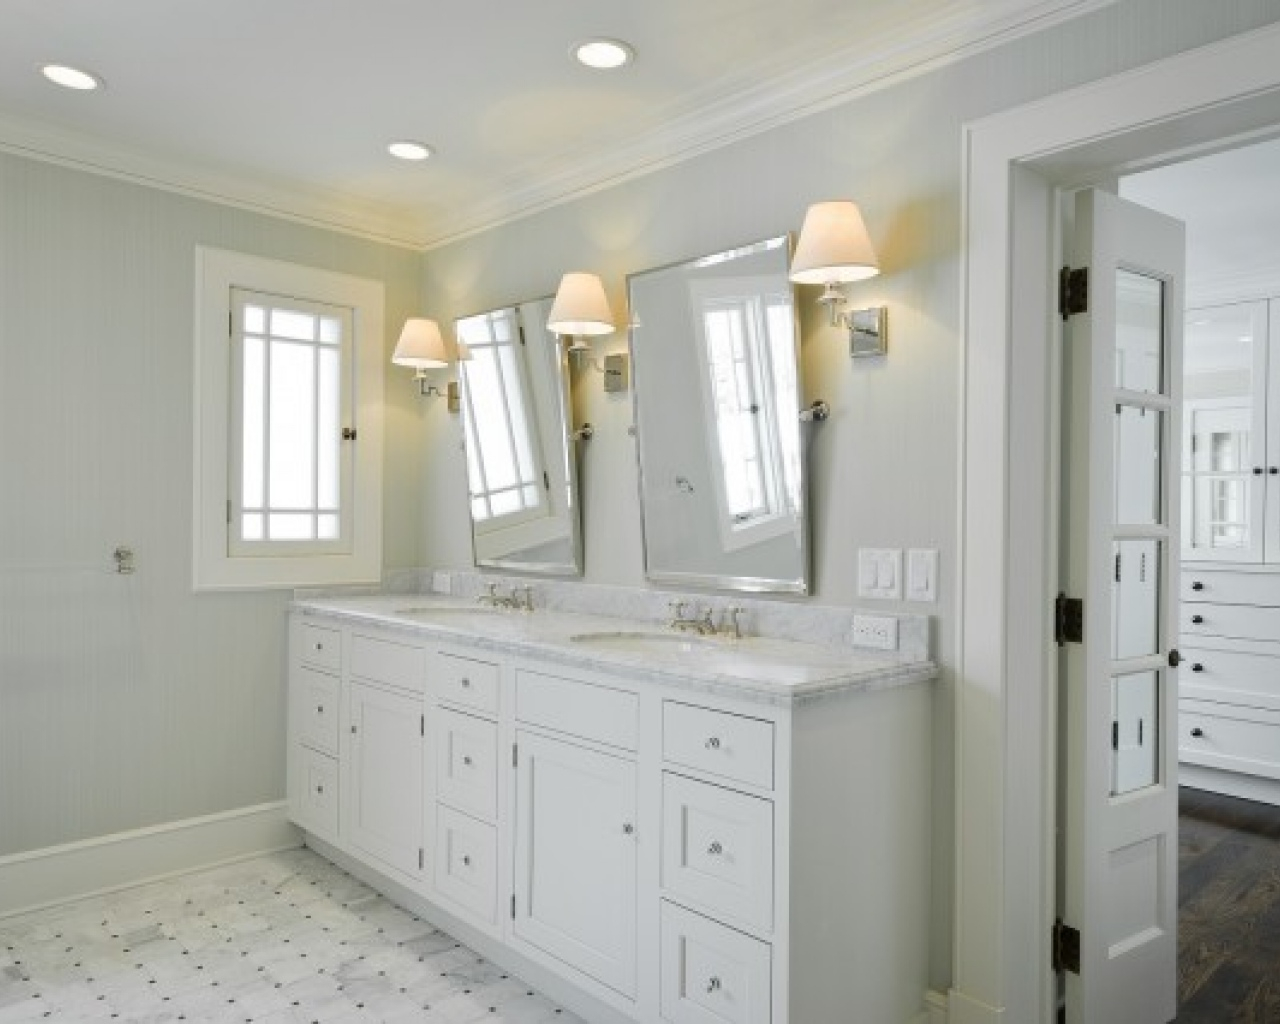 Amazing Bathroom Vanity Mirrors - Home And Interior with Bathroom Vanity Mirrors